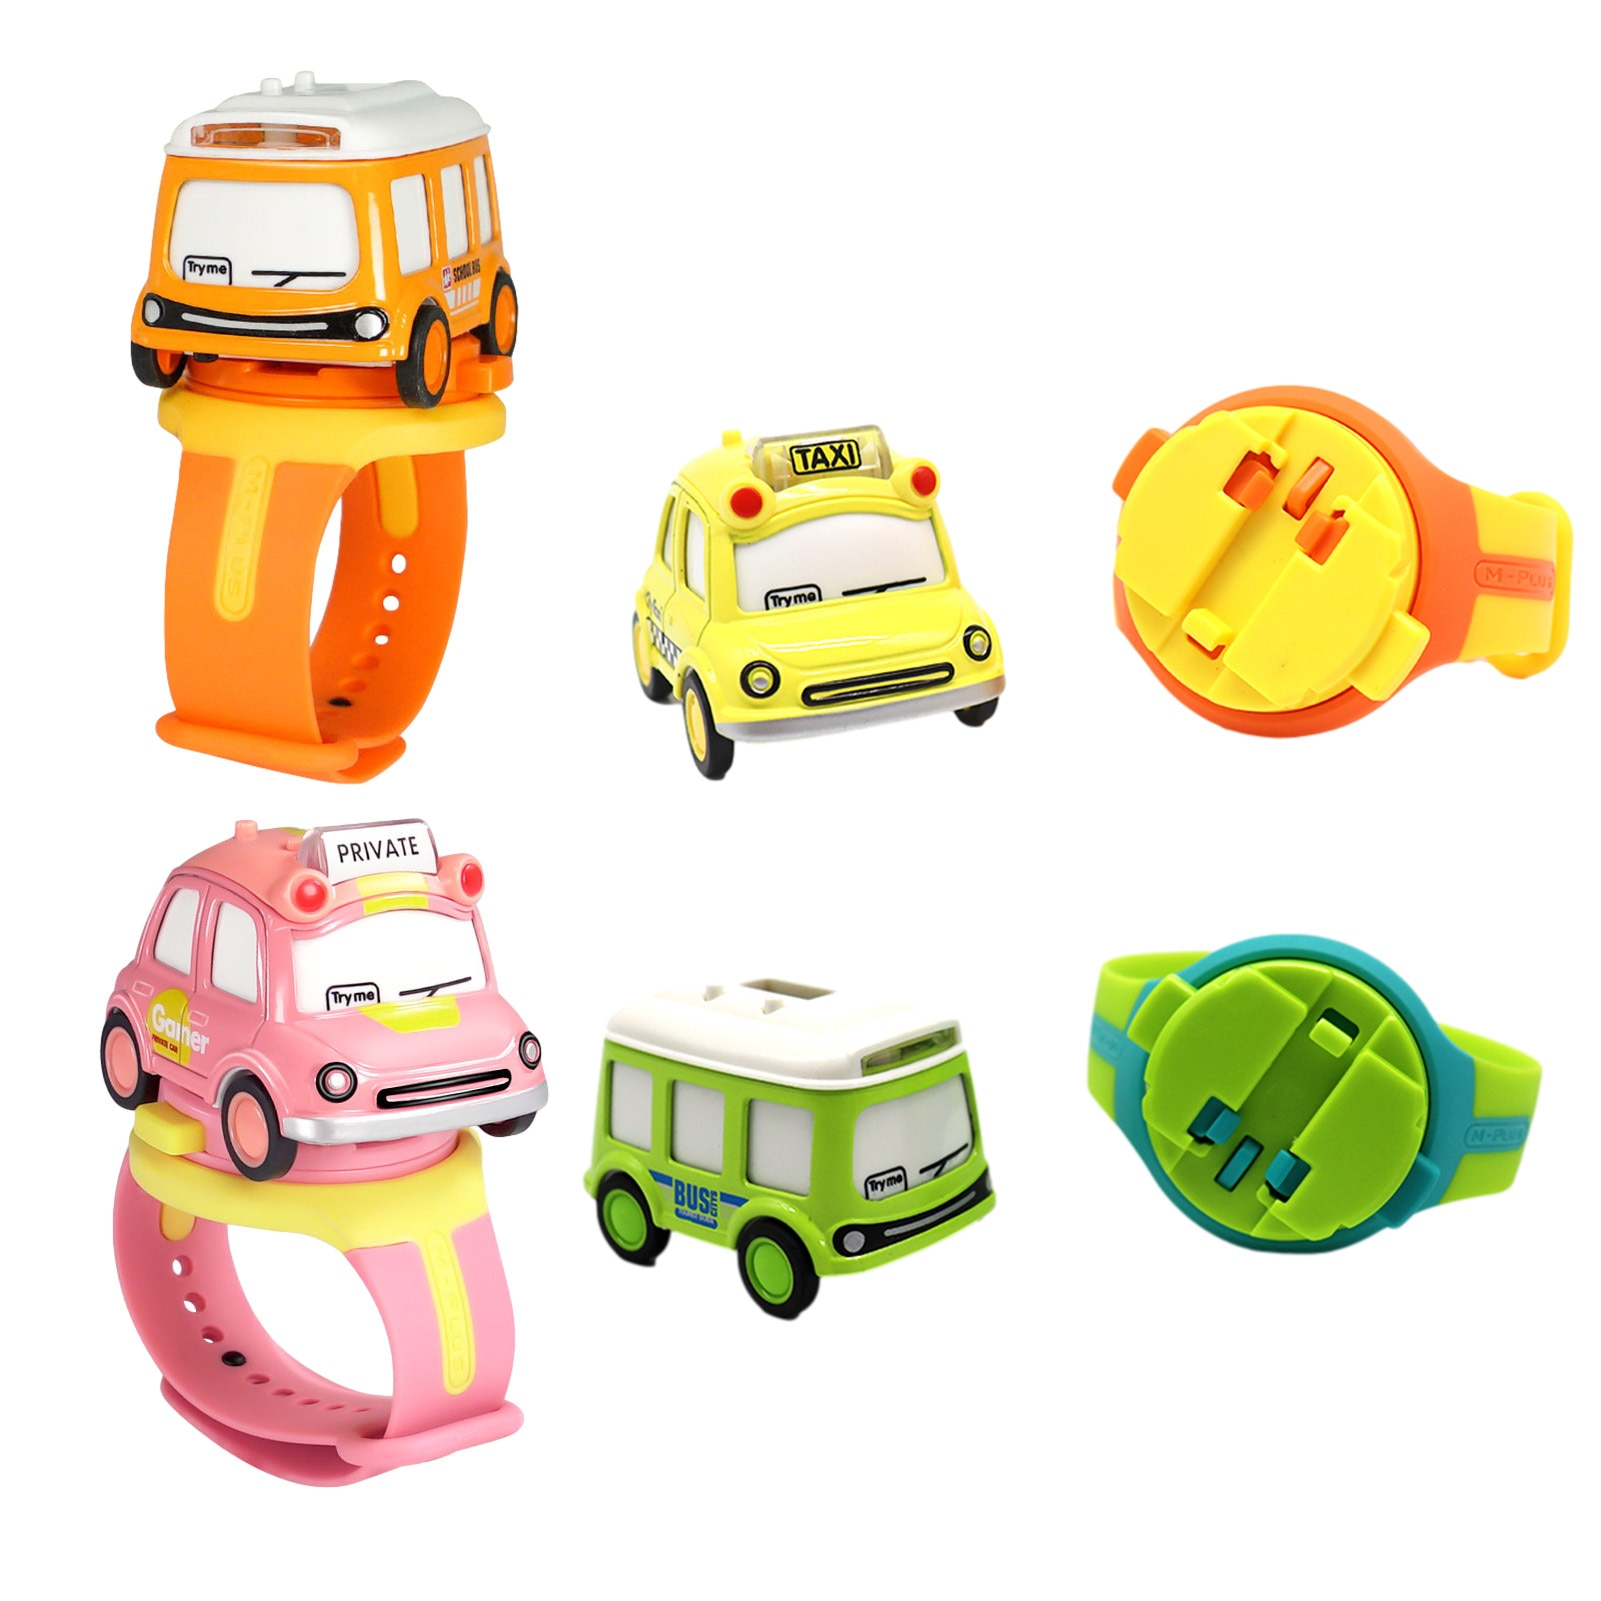 1:62 Alloy Car-with Digital Display Watch Q Version Trolley Bus Interactive Induction With Light And Music digital interactive installations